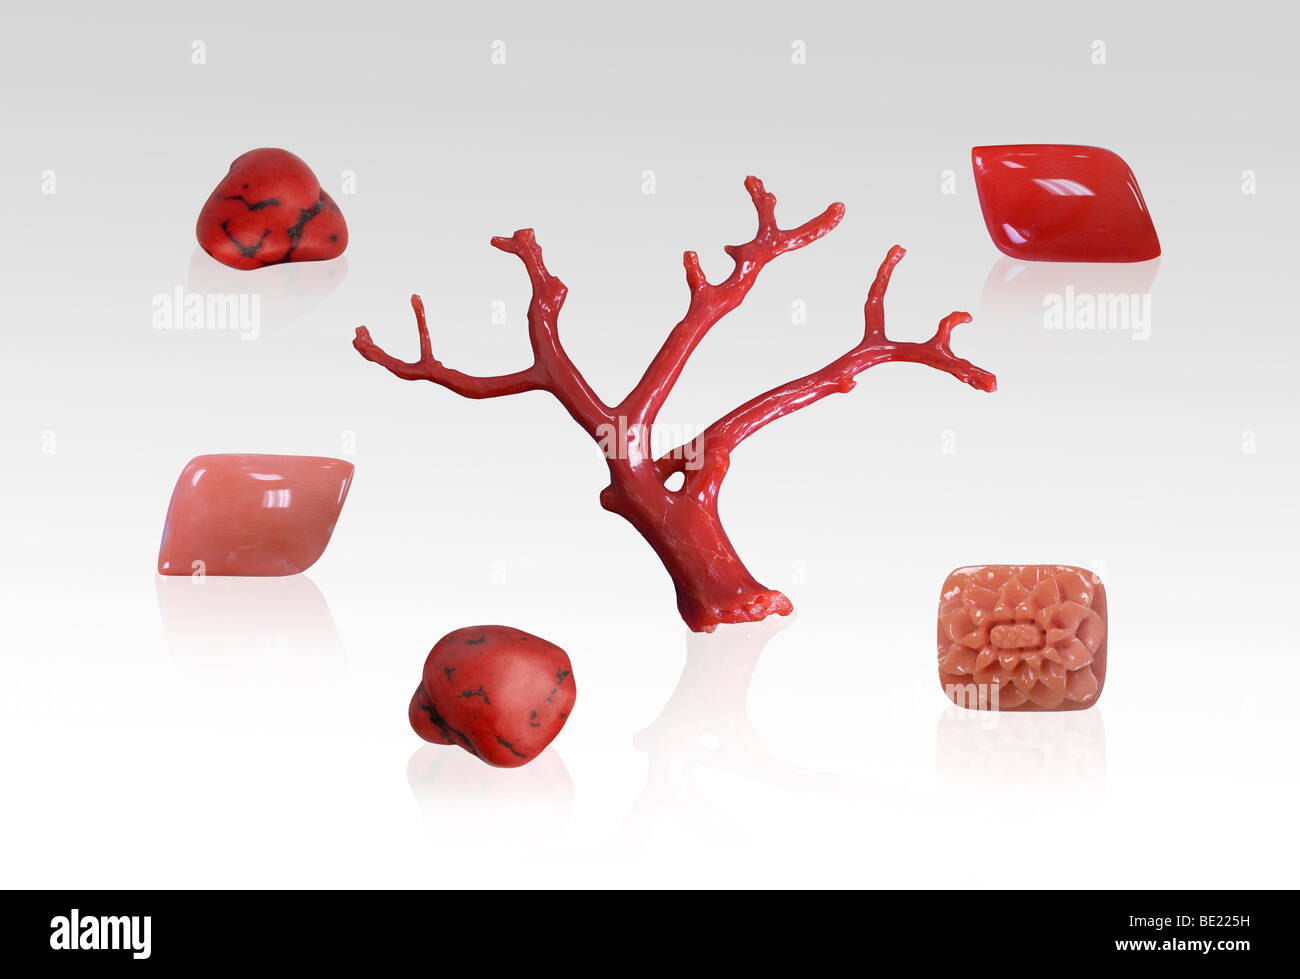 Red and pink coral specimens on white background - Stock Image